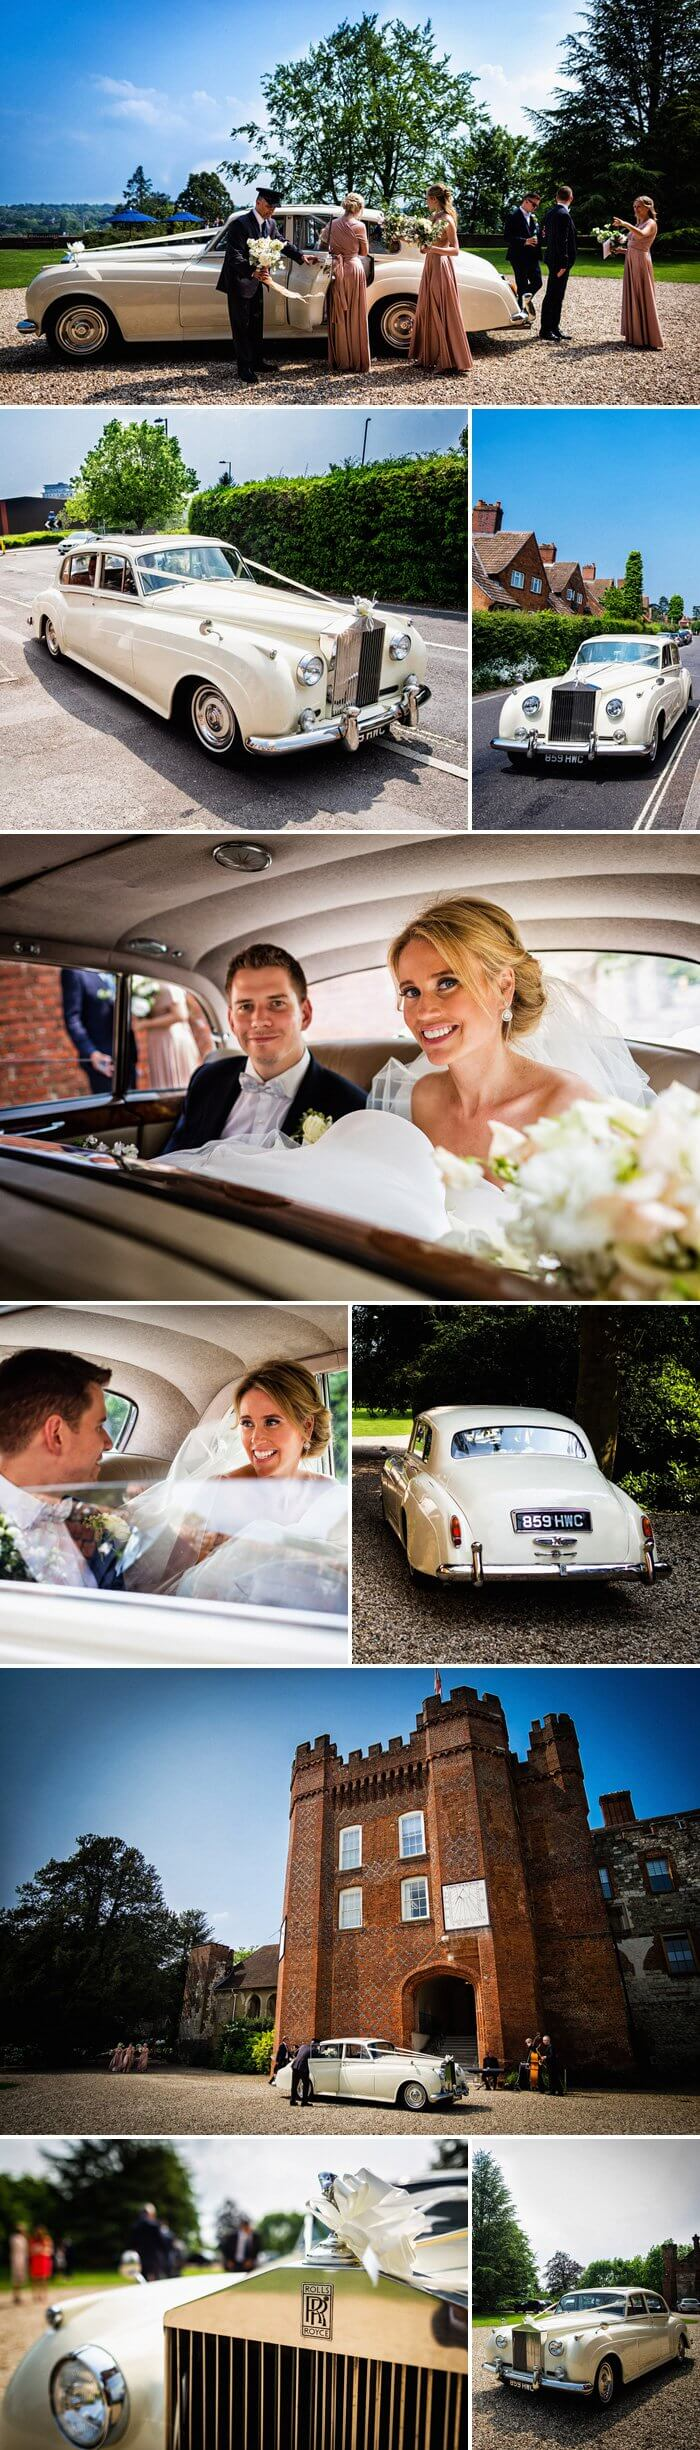 1632424767 359 English wedding in the castle 2 charming photo stories - English wedding in the castle   2 charming photo stories with many inspirations